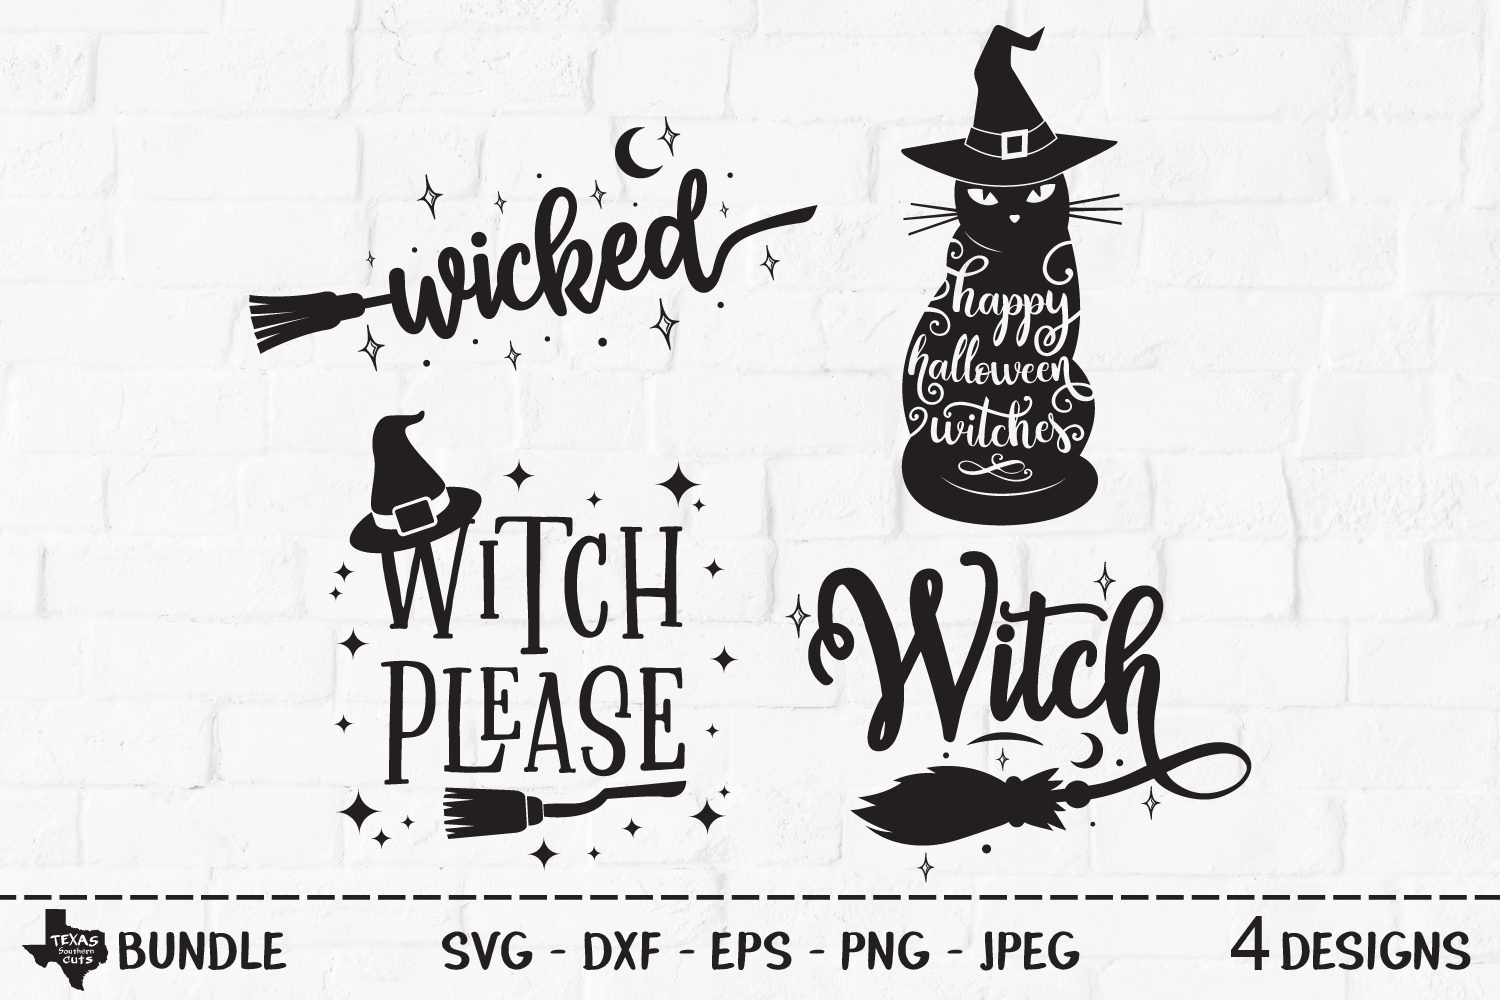 Wicked Witch Bundle Graphic By Texassoutherncuts Creative Fabrica